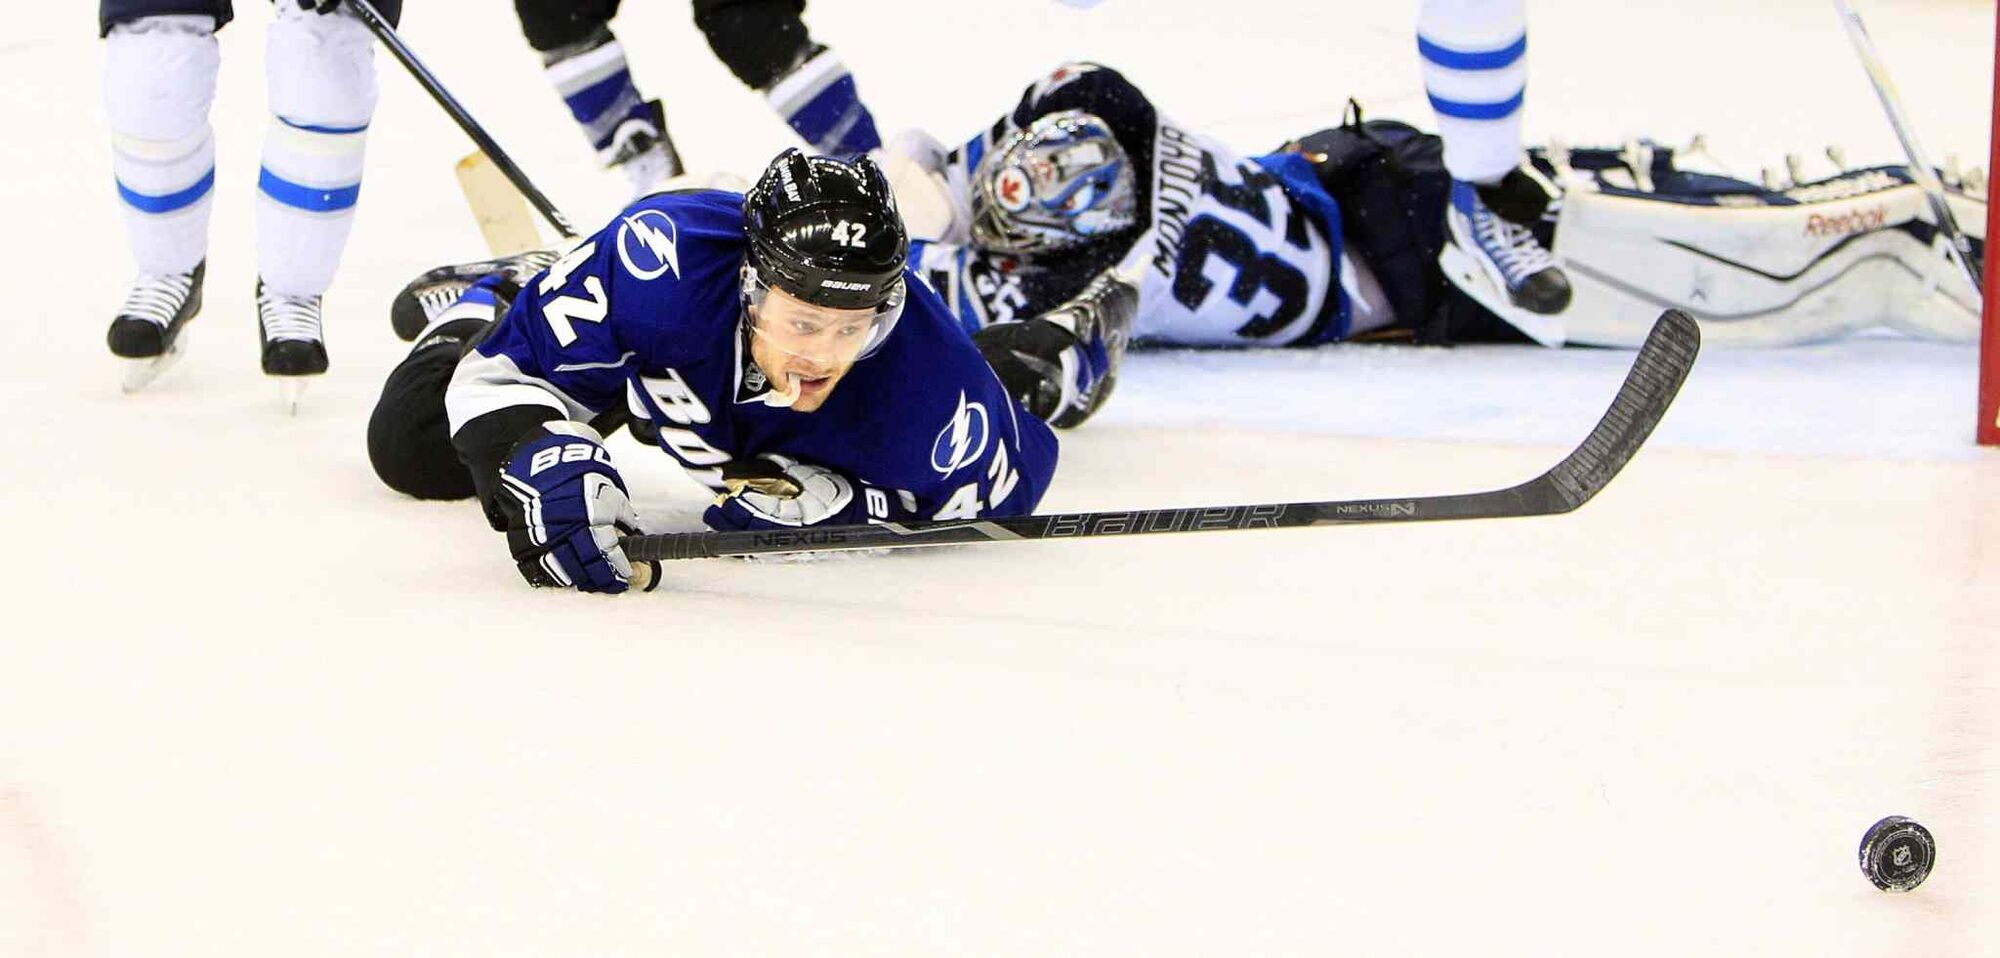 The Tampa Bay Lightning's Dana Tyrell (front) works to play the puck while down on the ice along with Winnipeg Jets goalie Al Montoya (right) during the first period. (Dirk Shadd / Tampa Bay Times / MCT)